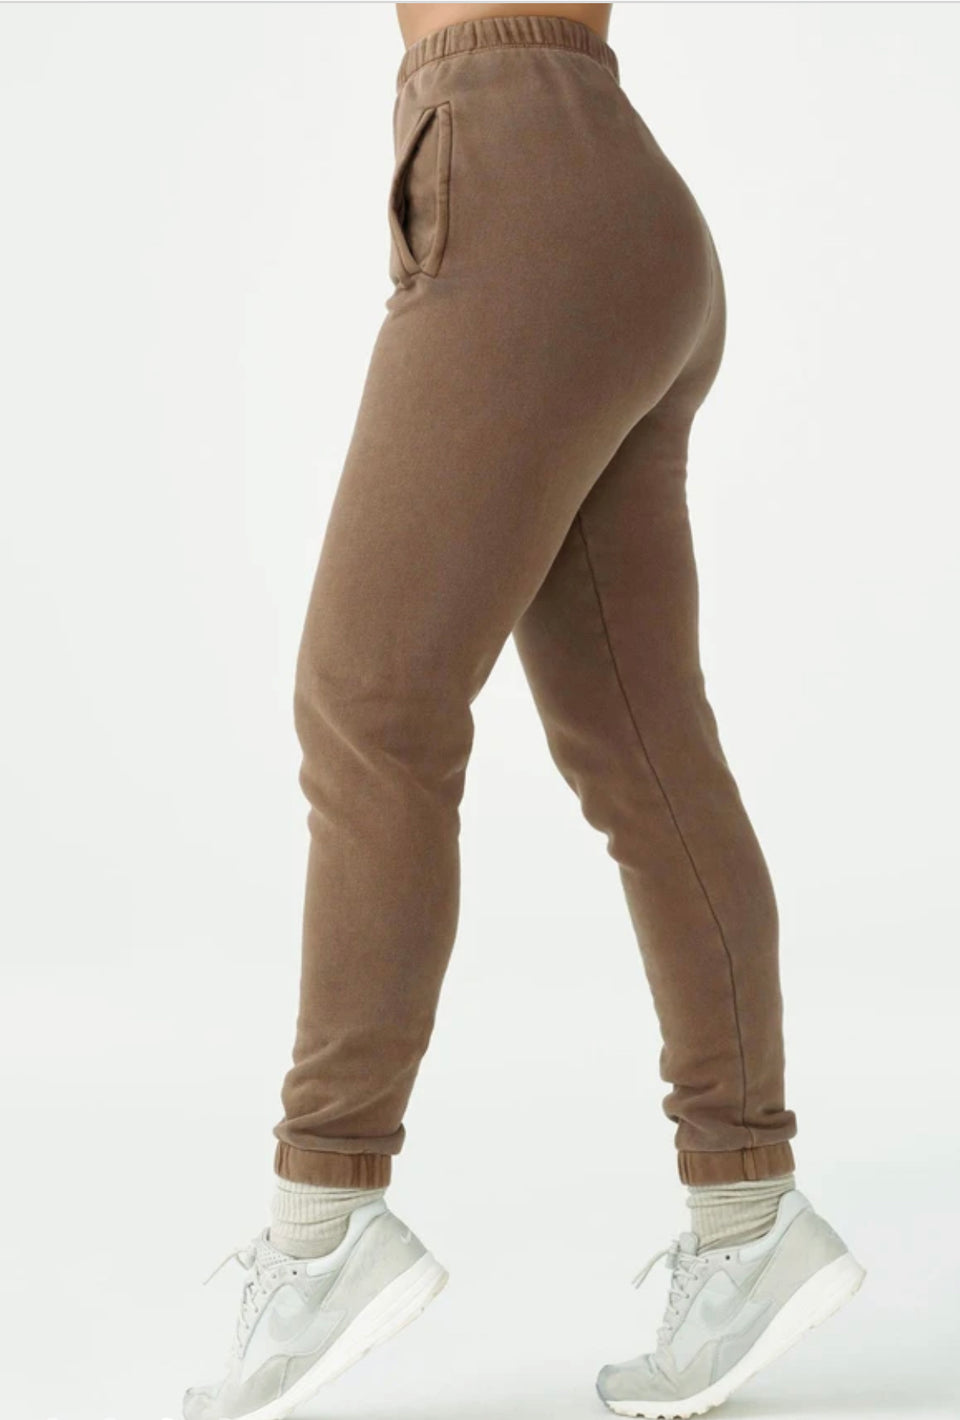 Joah Brown Empire Jogger Cocoa French Terry